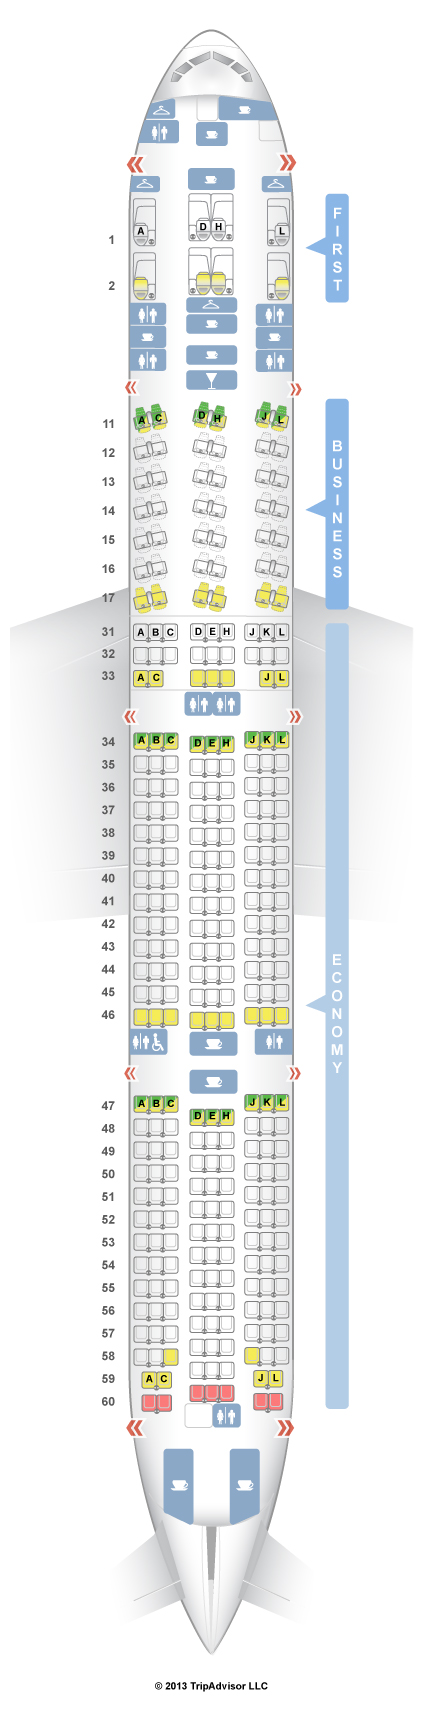 Aircraft Seating Chart 777 The Best And Latest Aircraft 2018